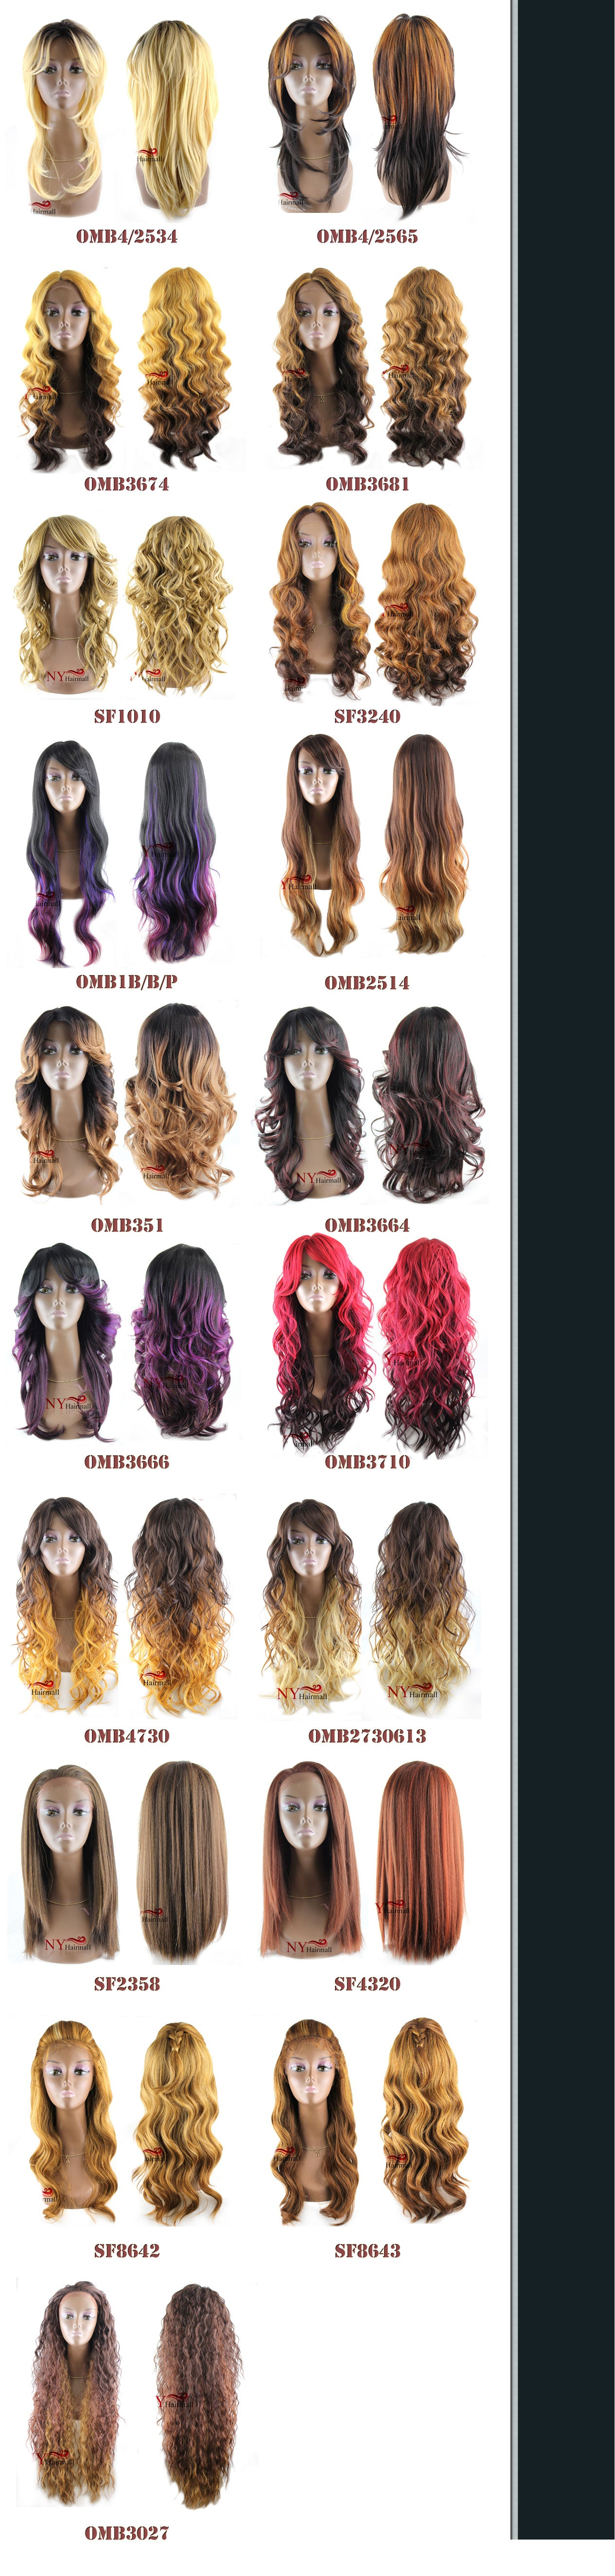 Royal Imex Zury Hollywood Color Chart Newyorkhairmall